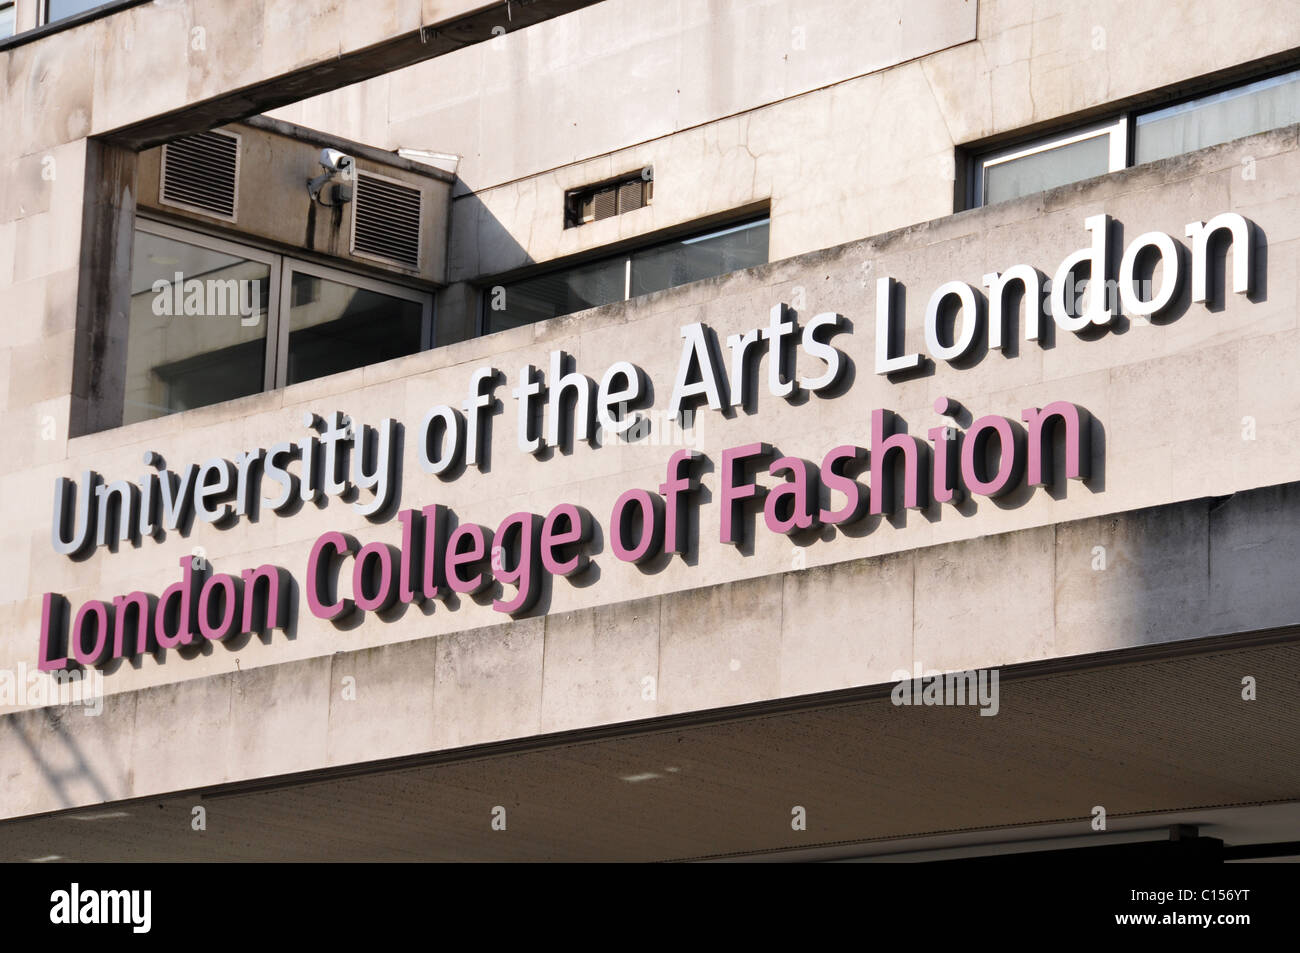 University of the arts london fashion 14